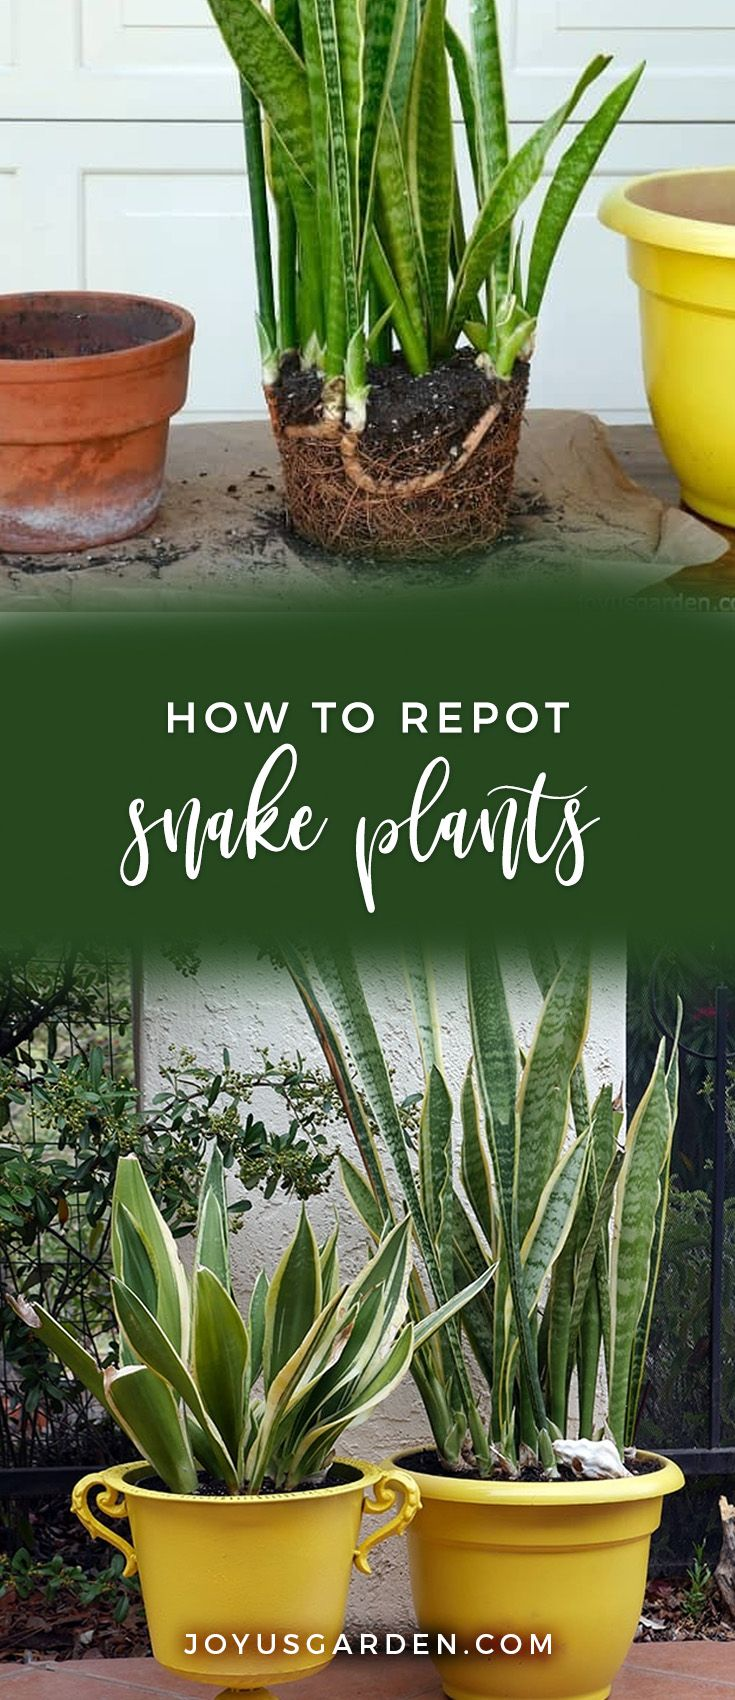 Repotting Snake Plants The Mix To Use & How To Do It is part of Plants, Repotting plants, Snake plant, Inside plants, Mother in law tongue, Snake plant care - Snake Plants are diehard houseplants  Here's the repotting of 2 Snake Plants  See the steps, the mix to use & find out when to do it  A video guides you